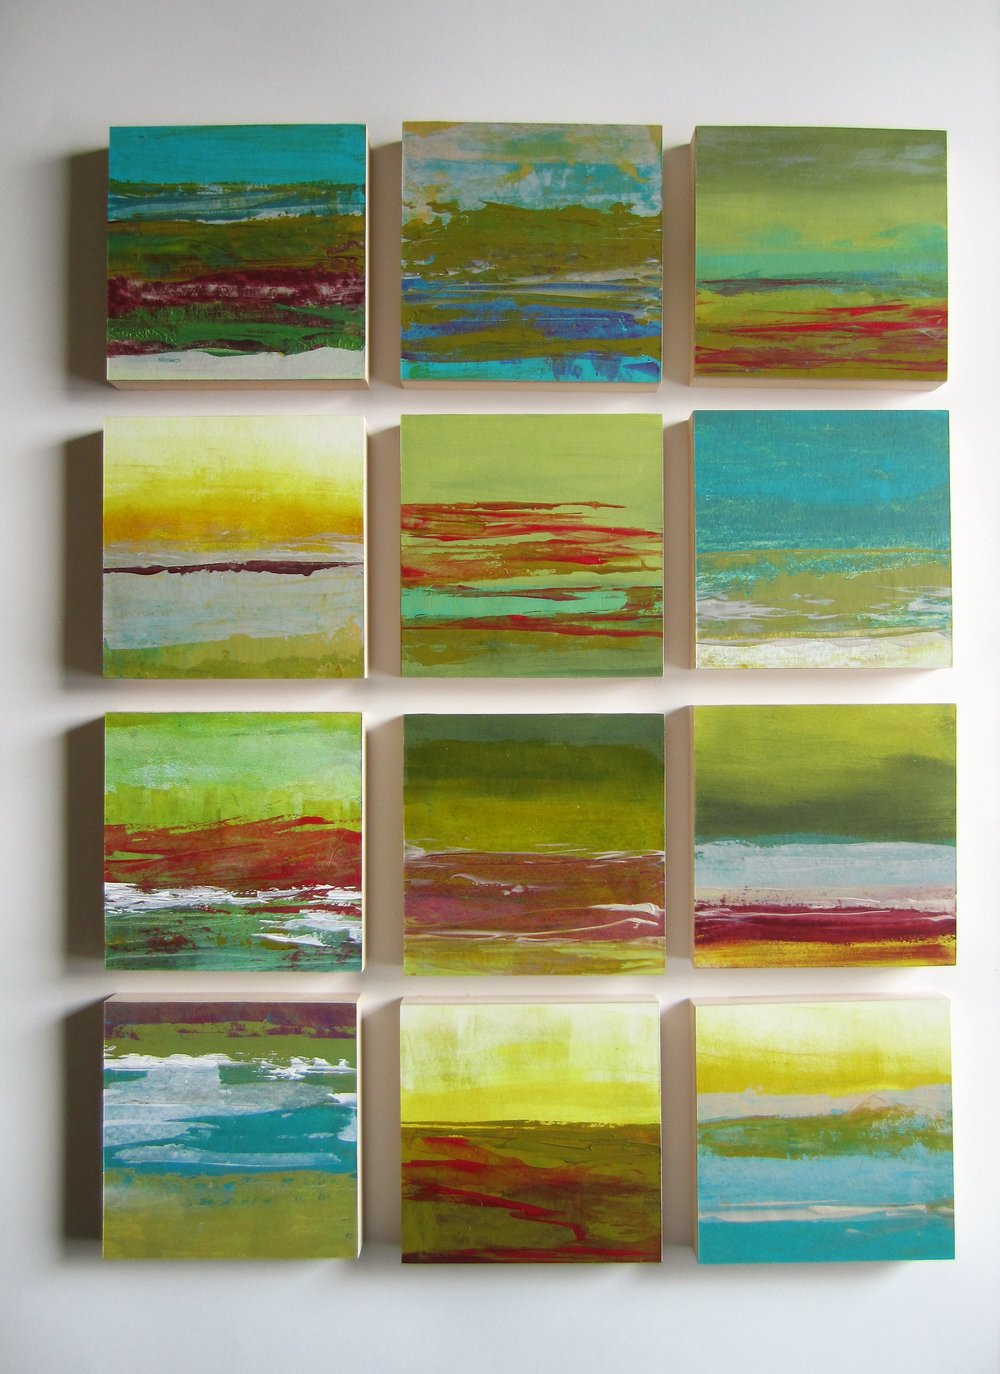 Image 3 - St. Andrews Seascape in series of 12 in arylic - Susan Greenbank 2018.JPG